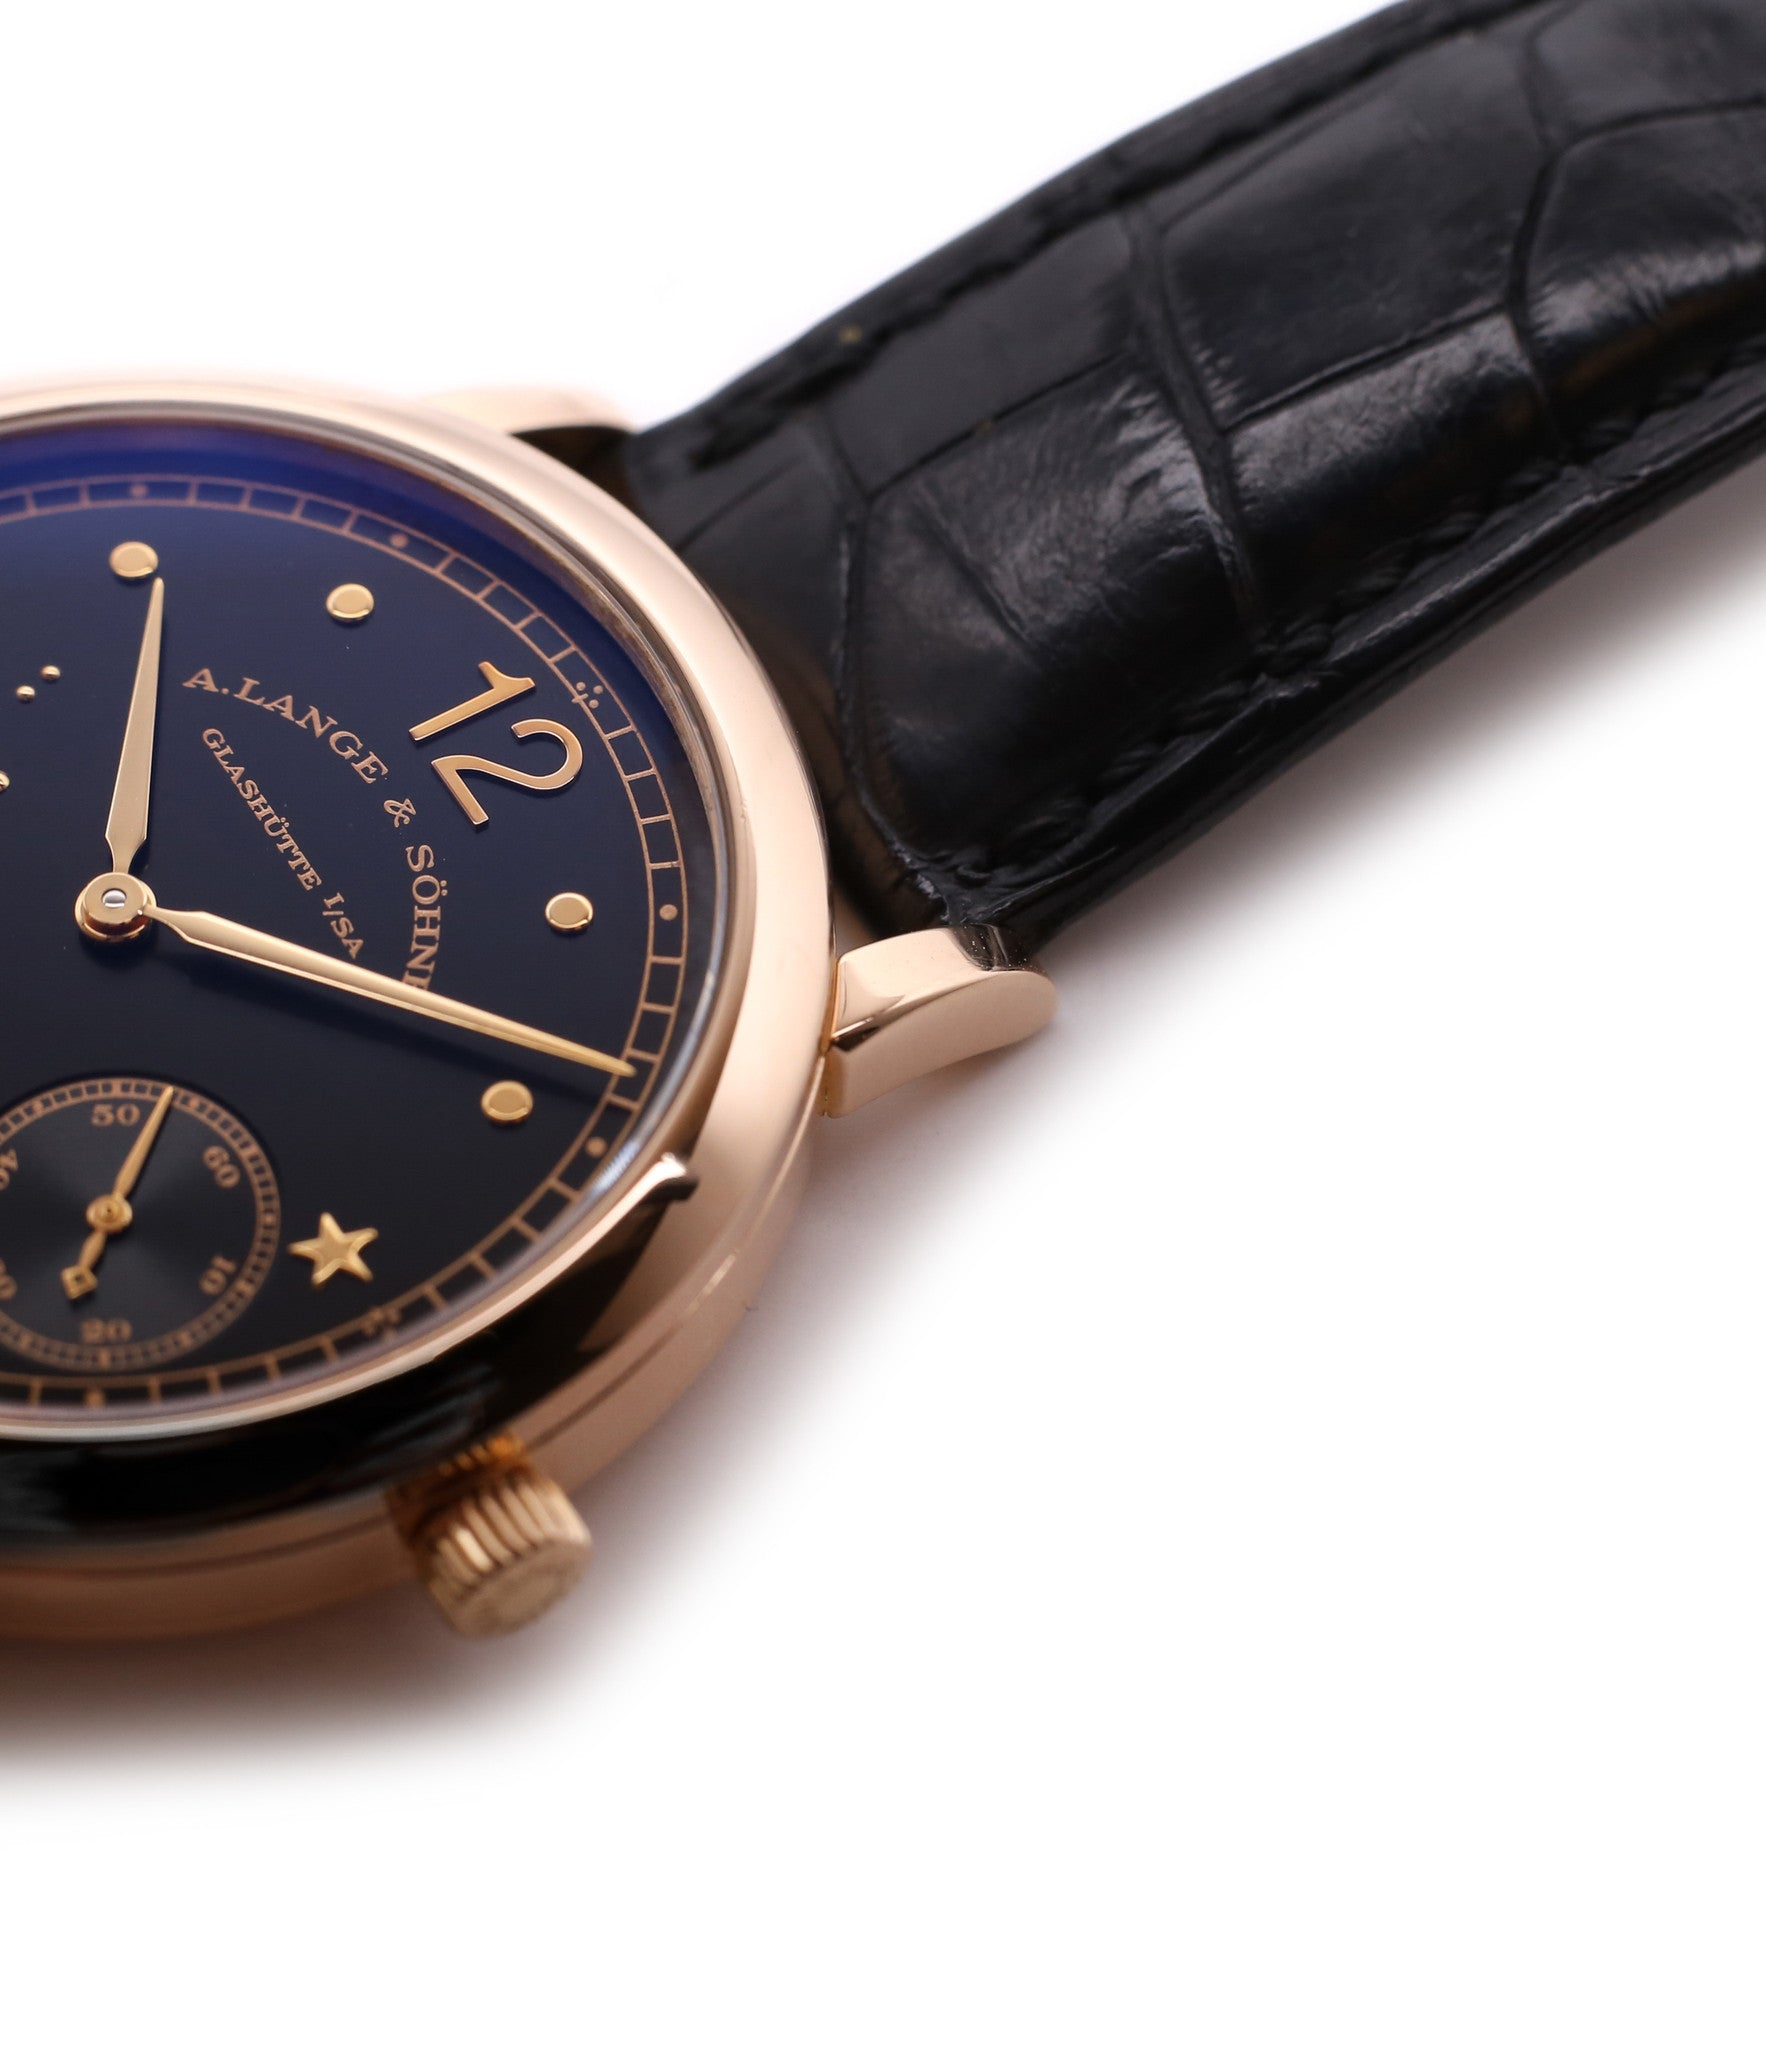 dress watch buy rare A. Lange & Söhne 1815 Moonphase Hommage a Emil Lange 1849-1922 rose gold black dial watch at A Collected Man curated platform of rare and vintage watches